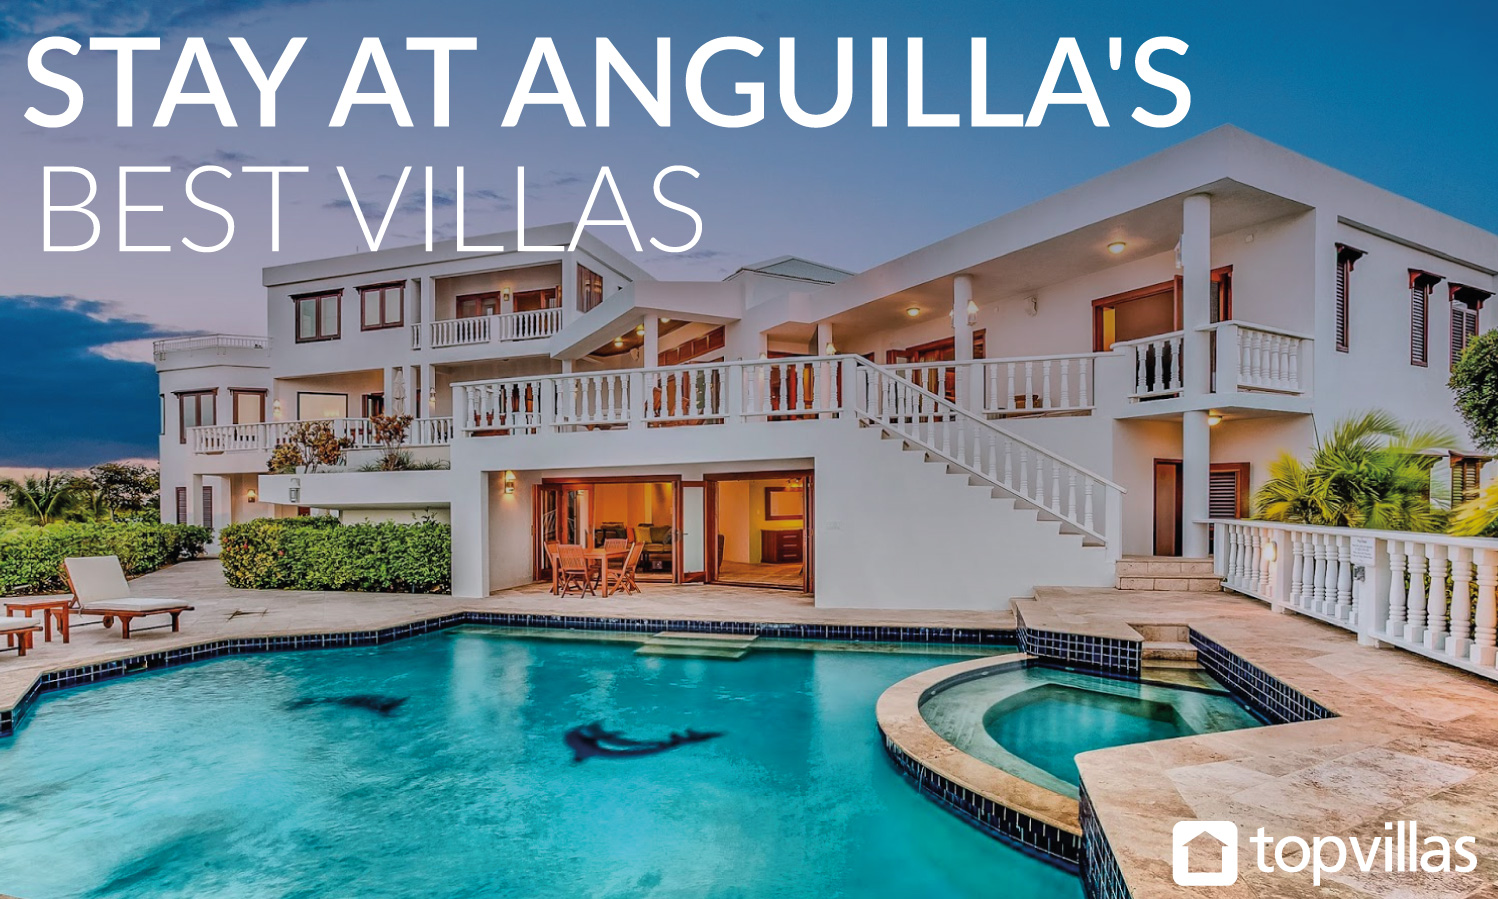 Best Villas on Anguilla